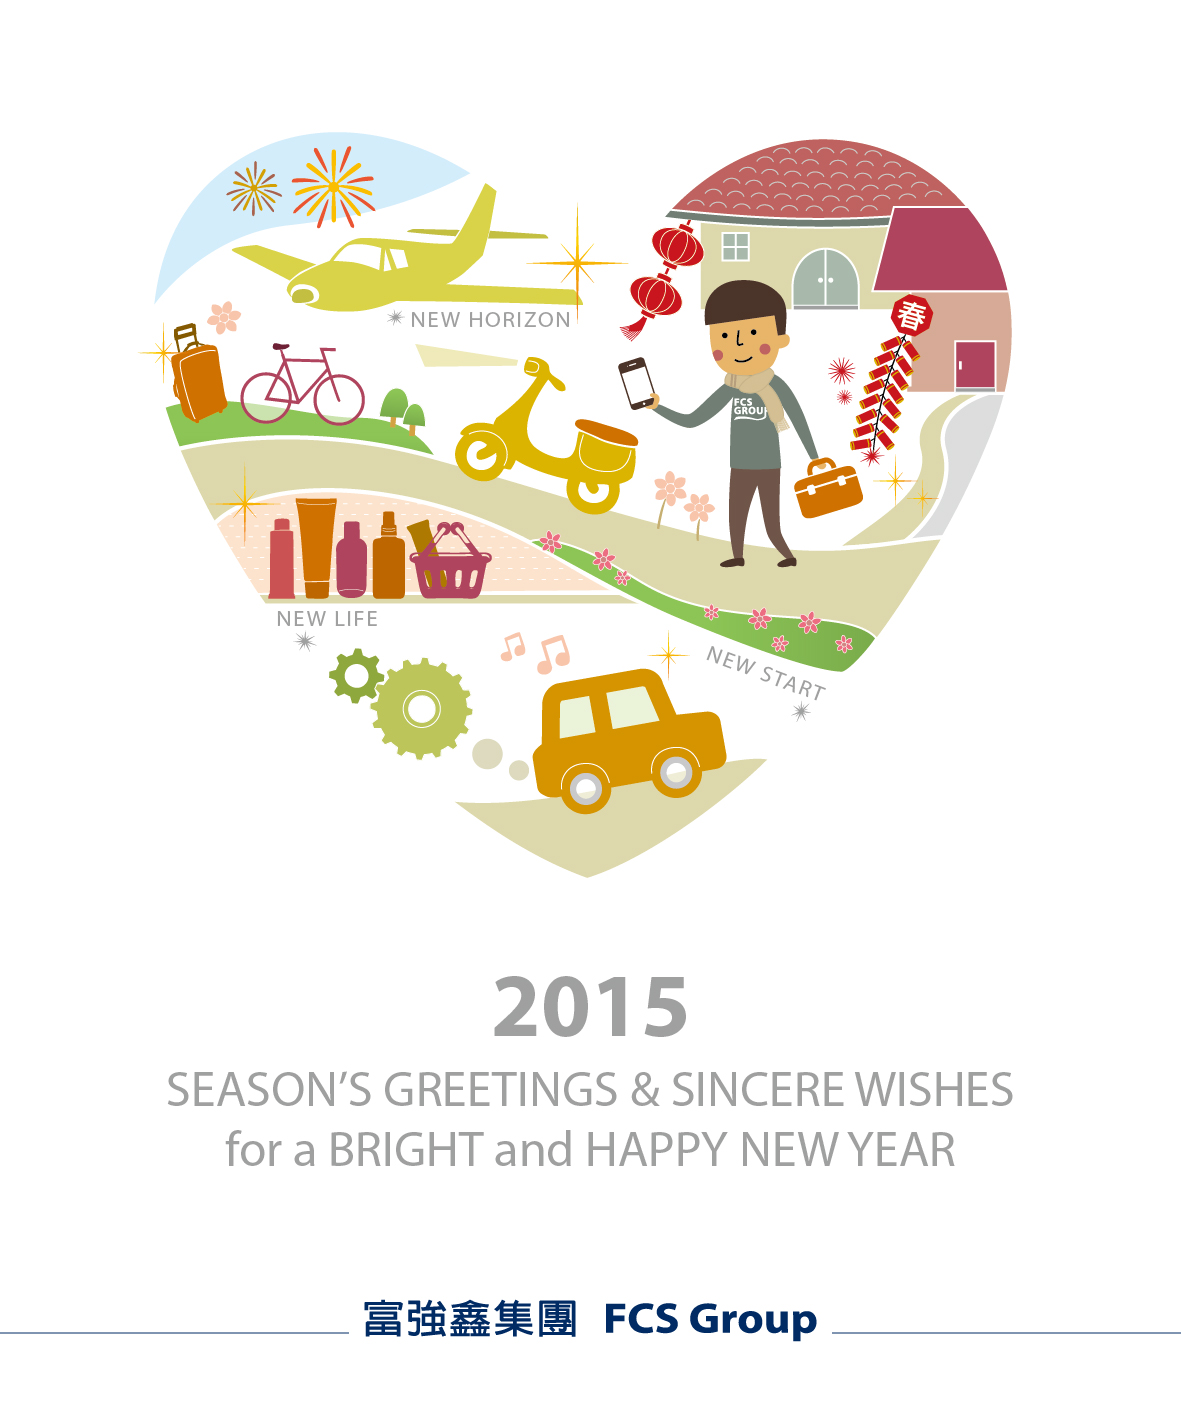 Fu chun shin fcs group your injection molding solution we extend our deepest gratitude for your support to fu chun shin in this yuletide season we wish you great happiness and abundance m4hsunfo